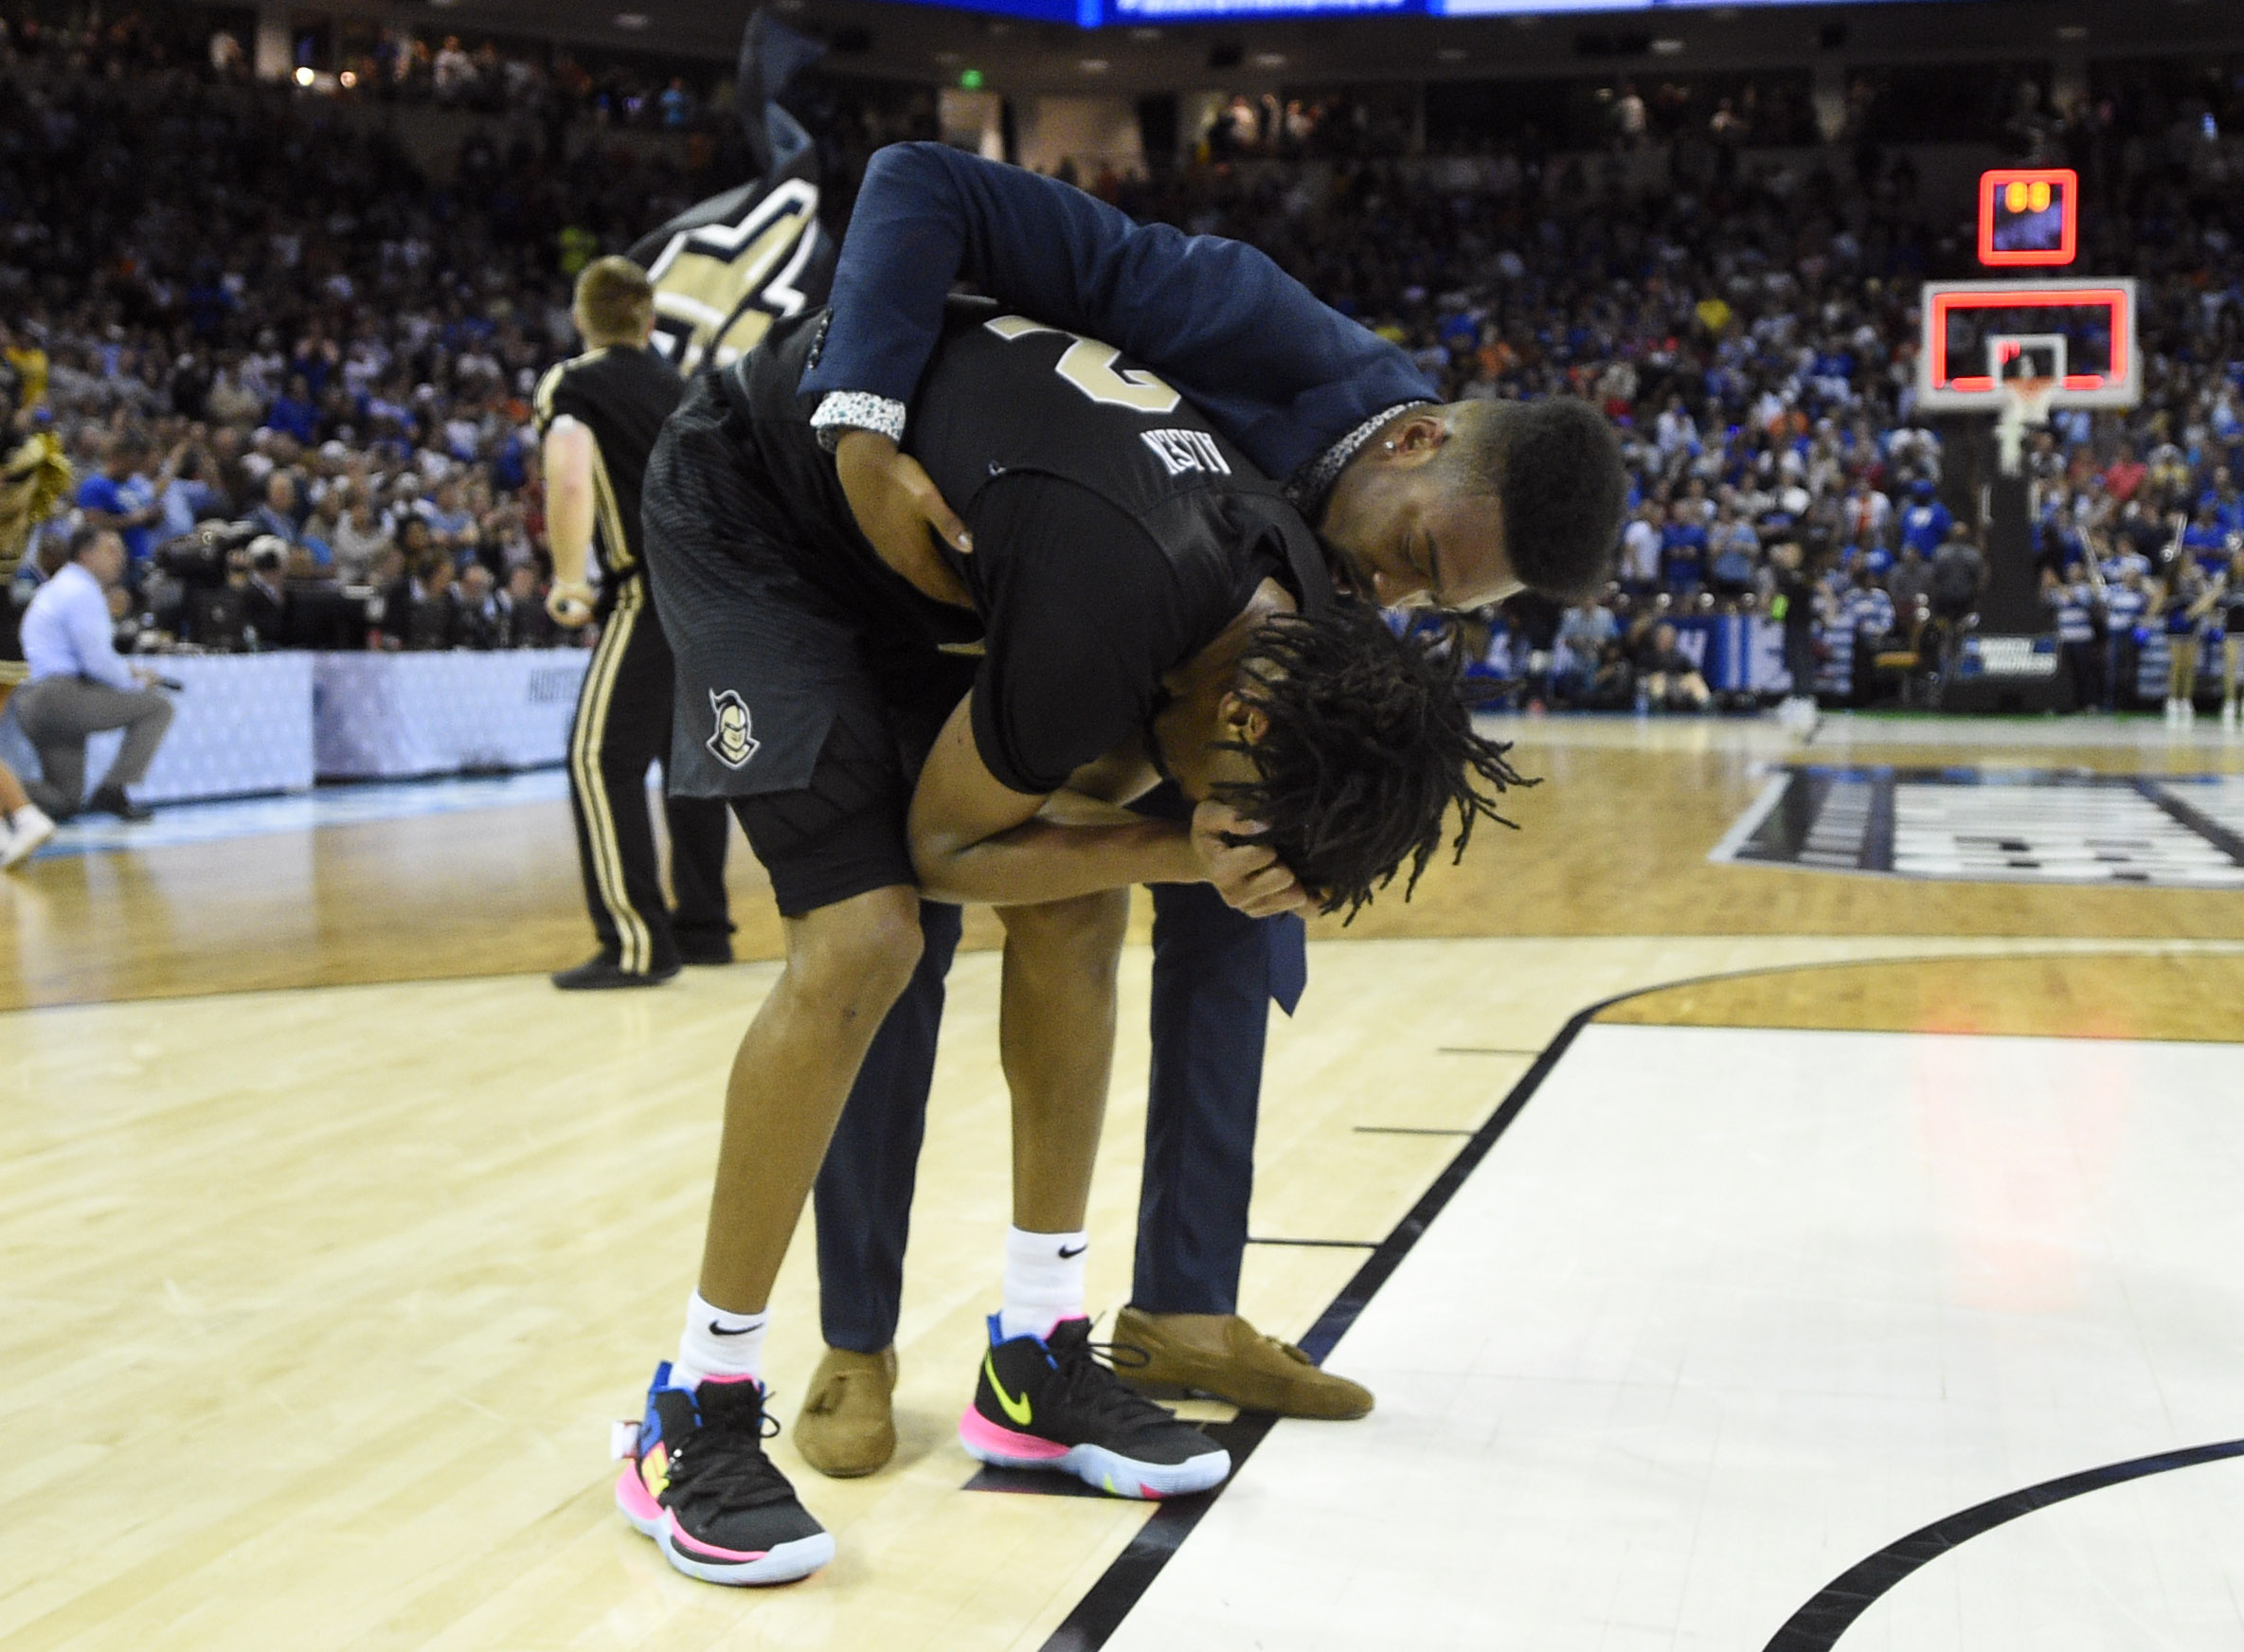 d170e0f4a9 UCF Knights guard Terrell Allen (center) reacts after being defeated by the  Duke Blue Devils in the second round of the 2019 NCAA tournament March 24  at ...